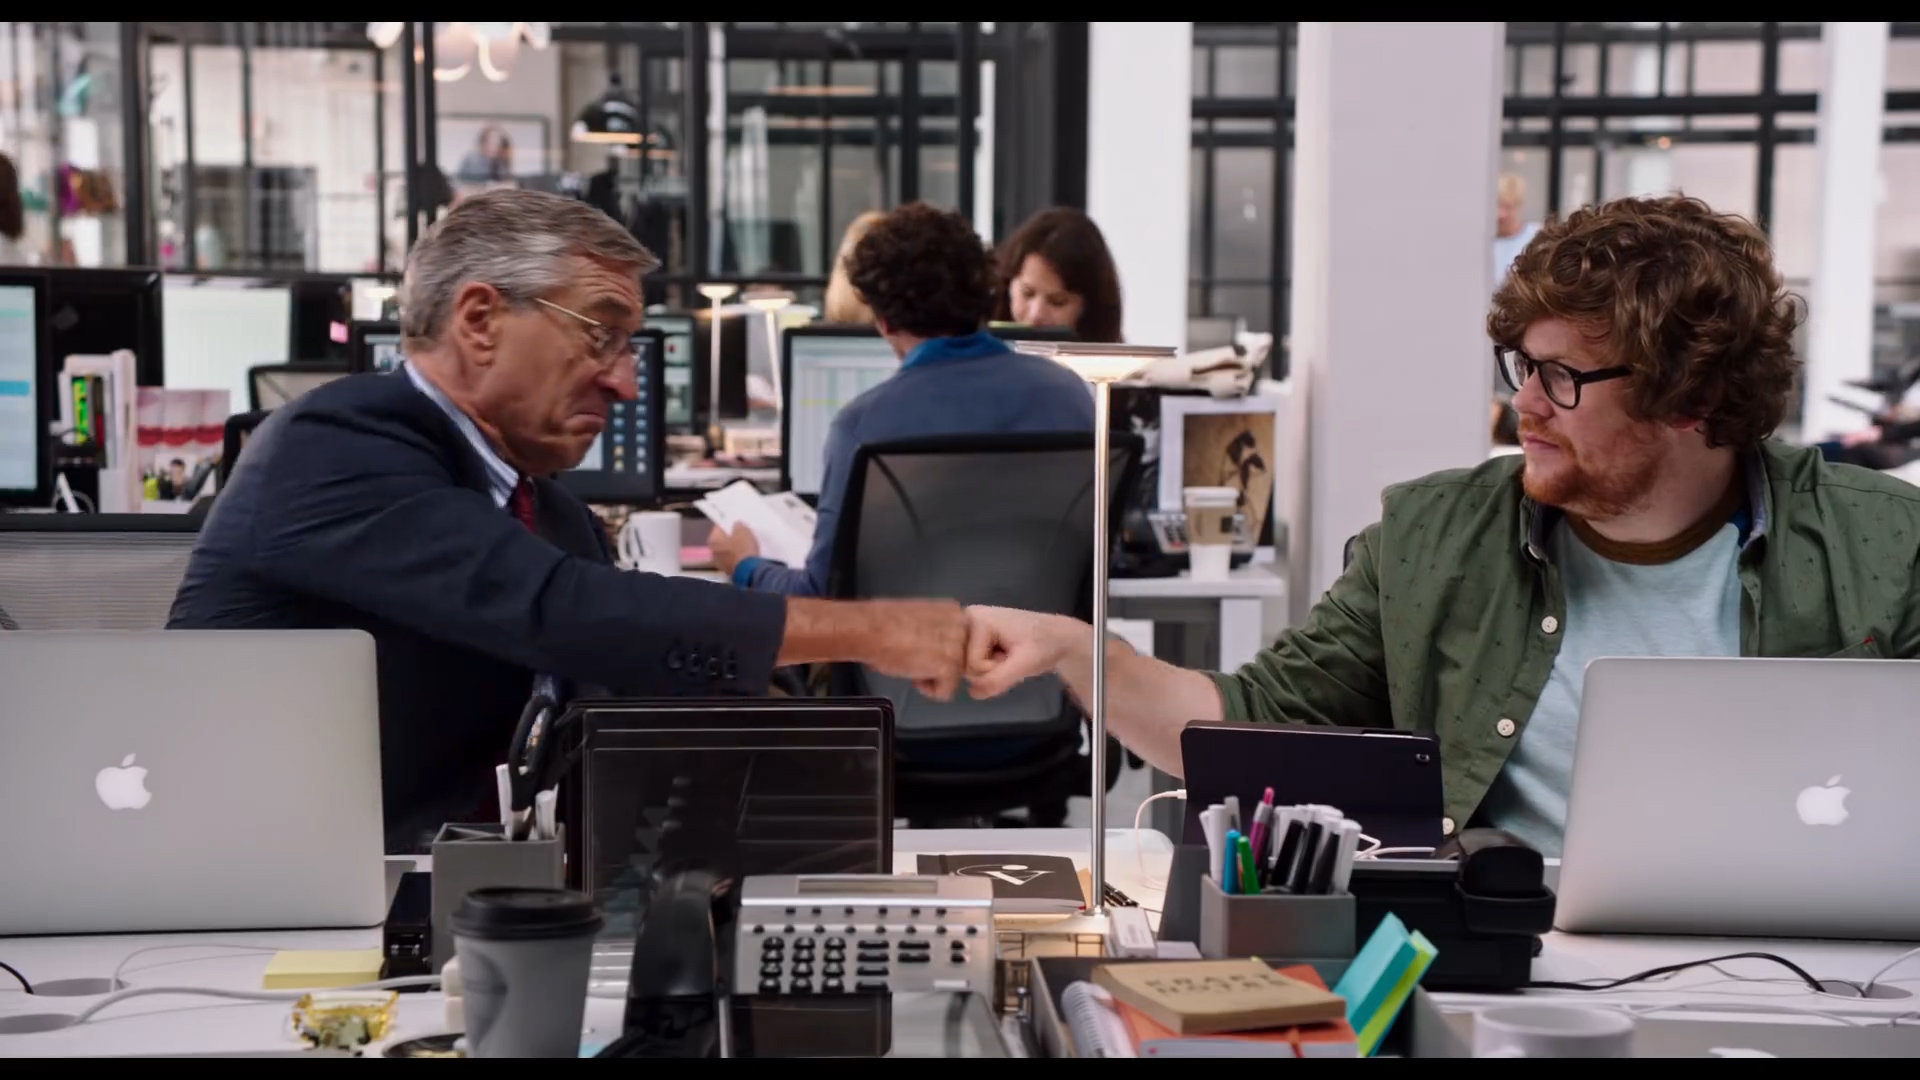 [1] The Intern | Official Trailer